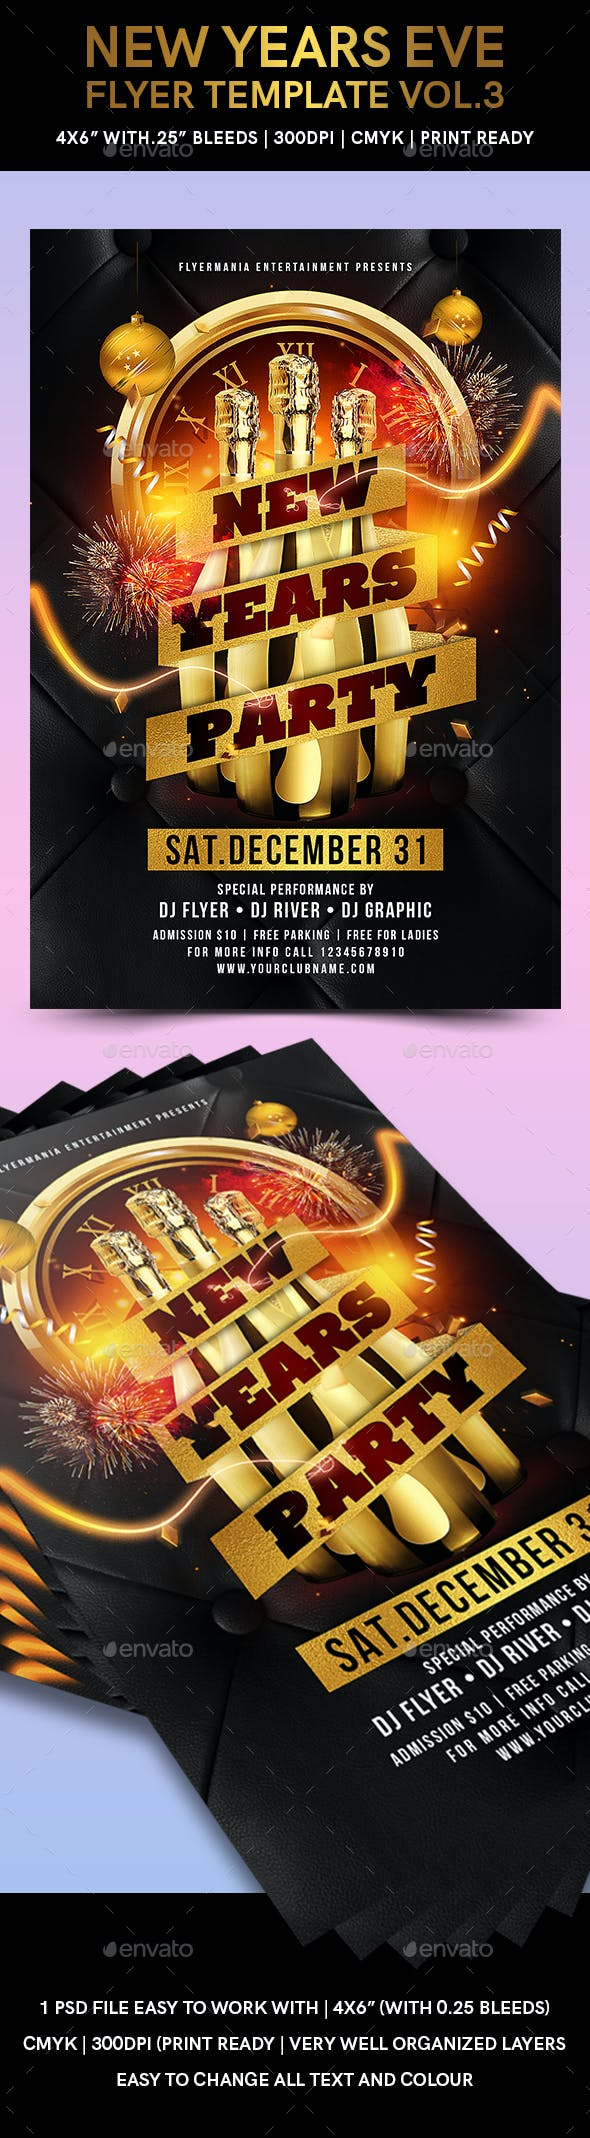 new years eve flyer template vol3 events flyers